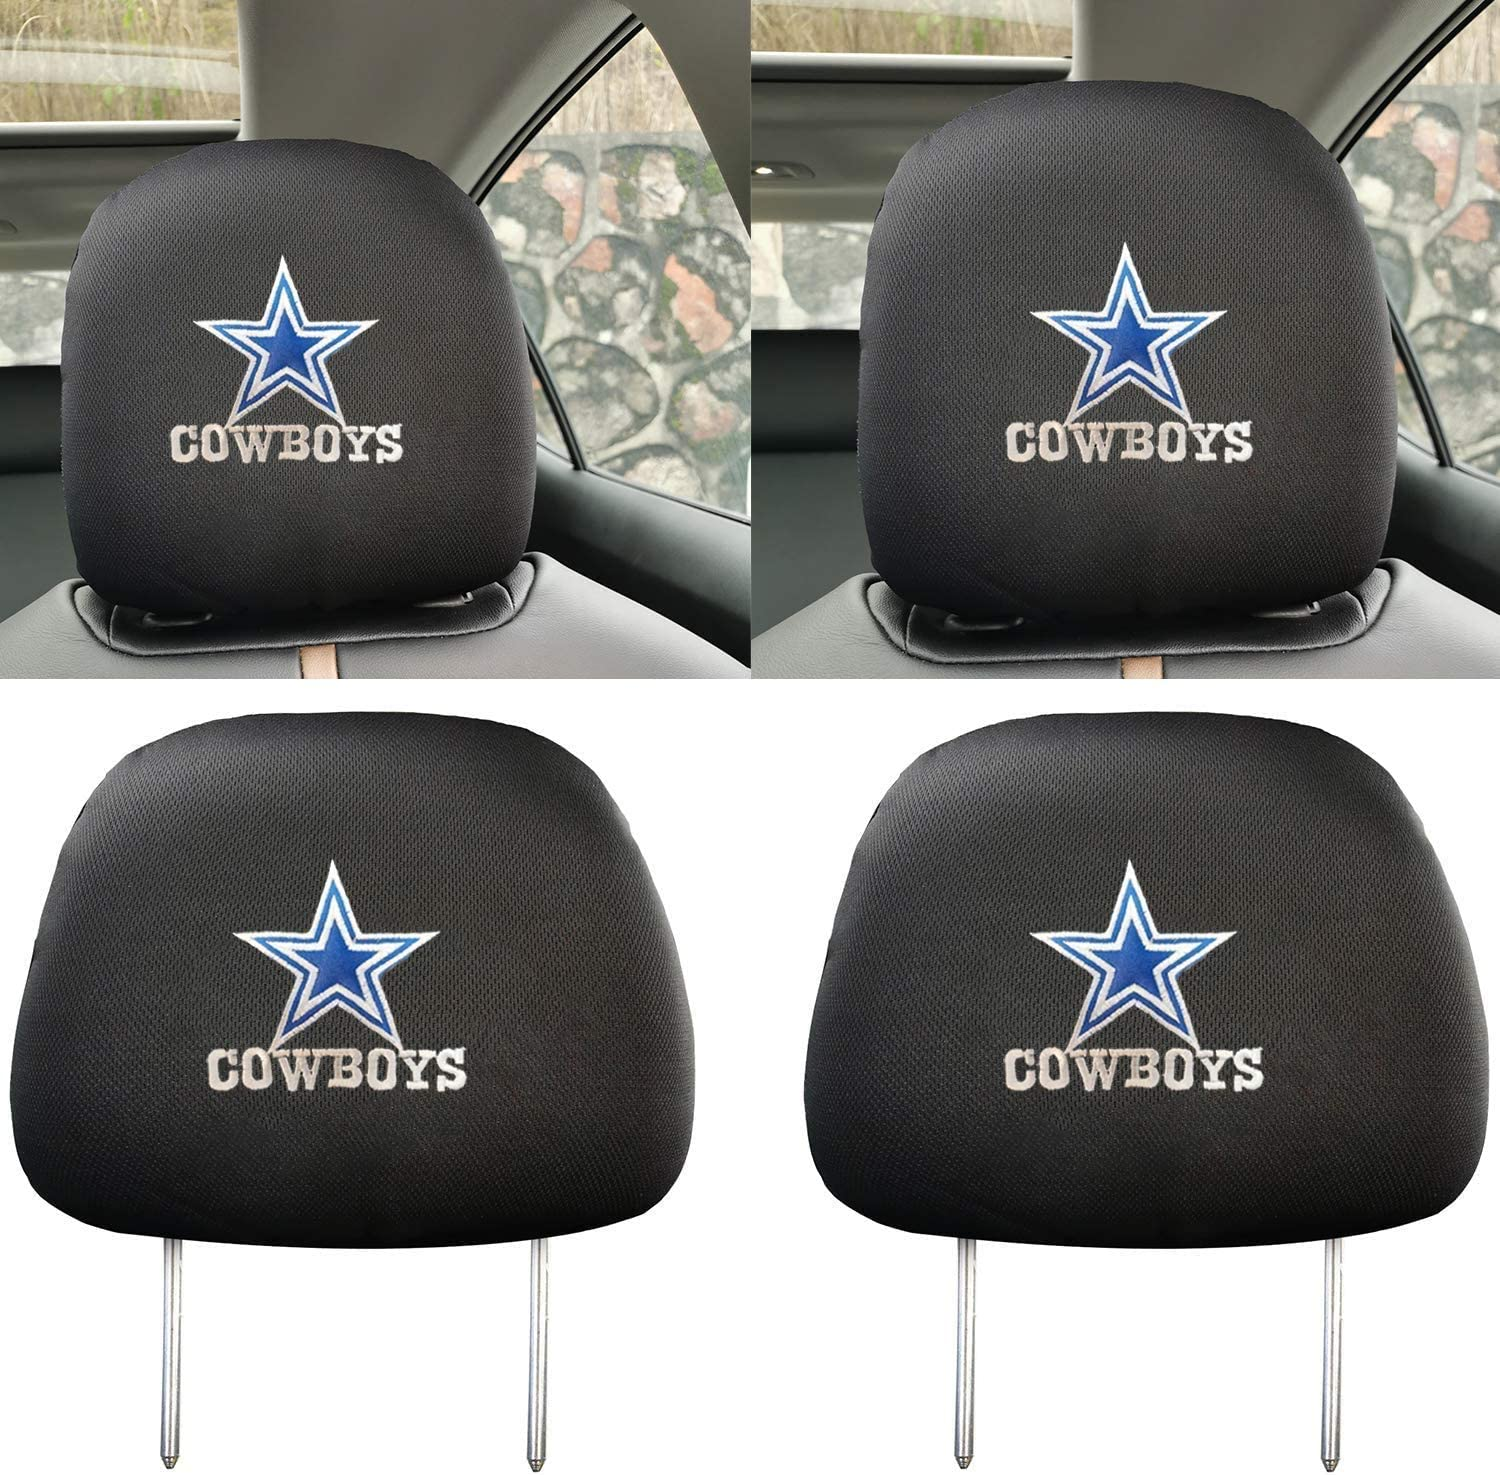 Goodcover 2Pcs Black Eagles Headrest Cover,Enhance The Visual Beauty of headrests highlighting The Attributes of Fans,Can be Extended and Applied Universal All car Models fit Philadelphia Eagles